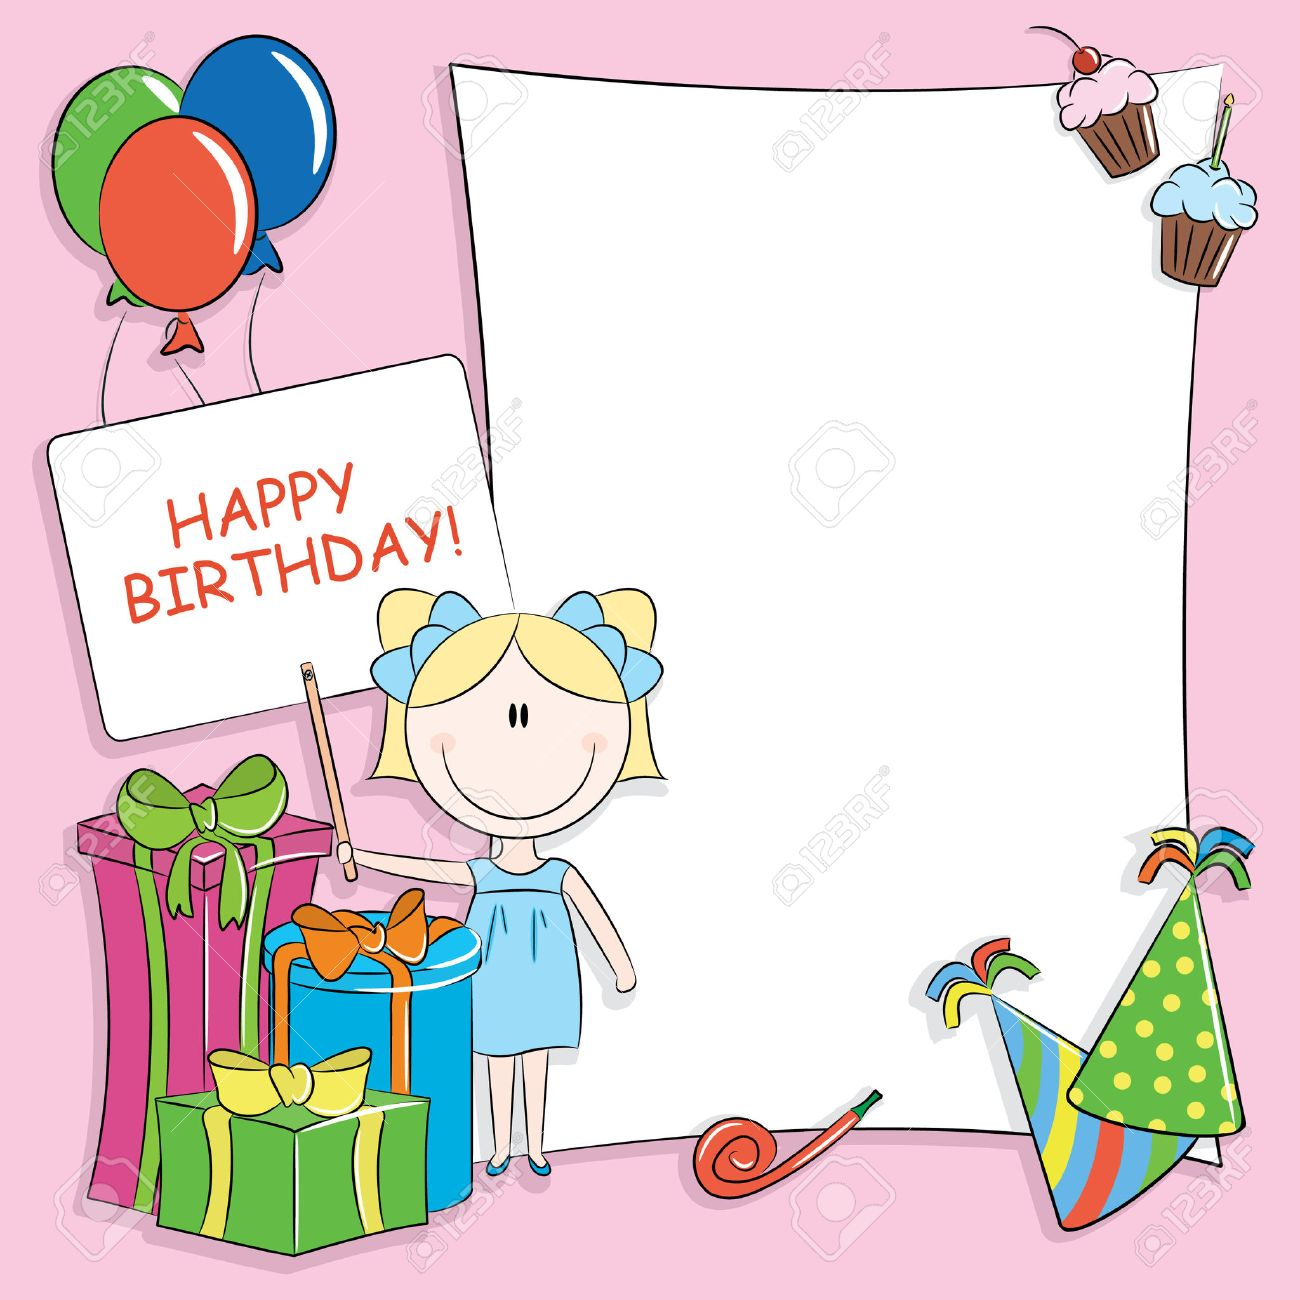 Good Happy Birthday Greeting Card With Blank Place For Your Wishes And Message  Stock Vector   7548128